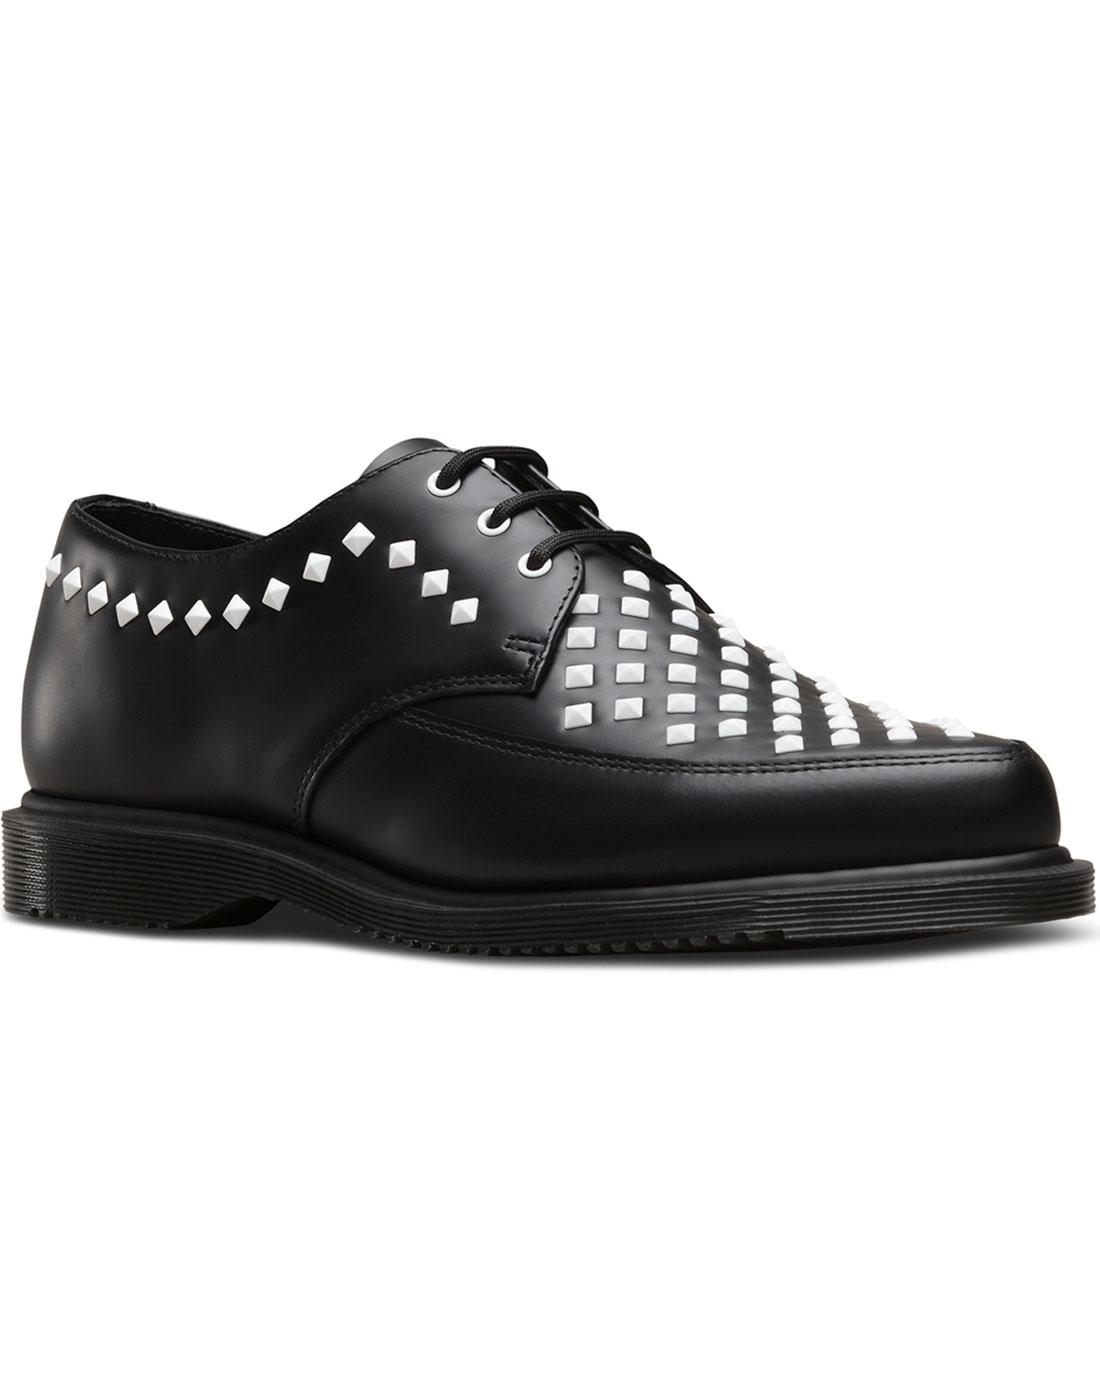 Willis DR MARTENS Retro 50s Smooth Stud Creeper B